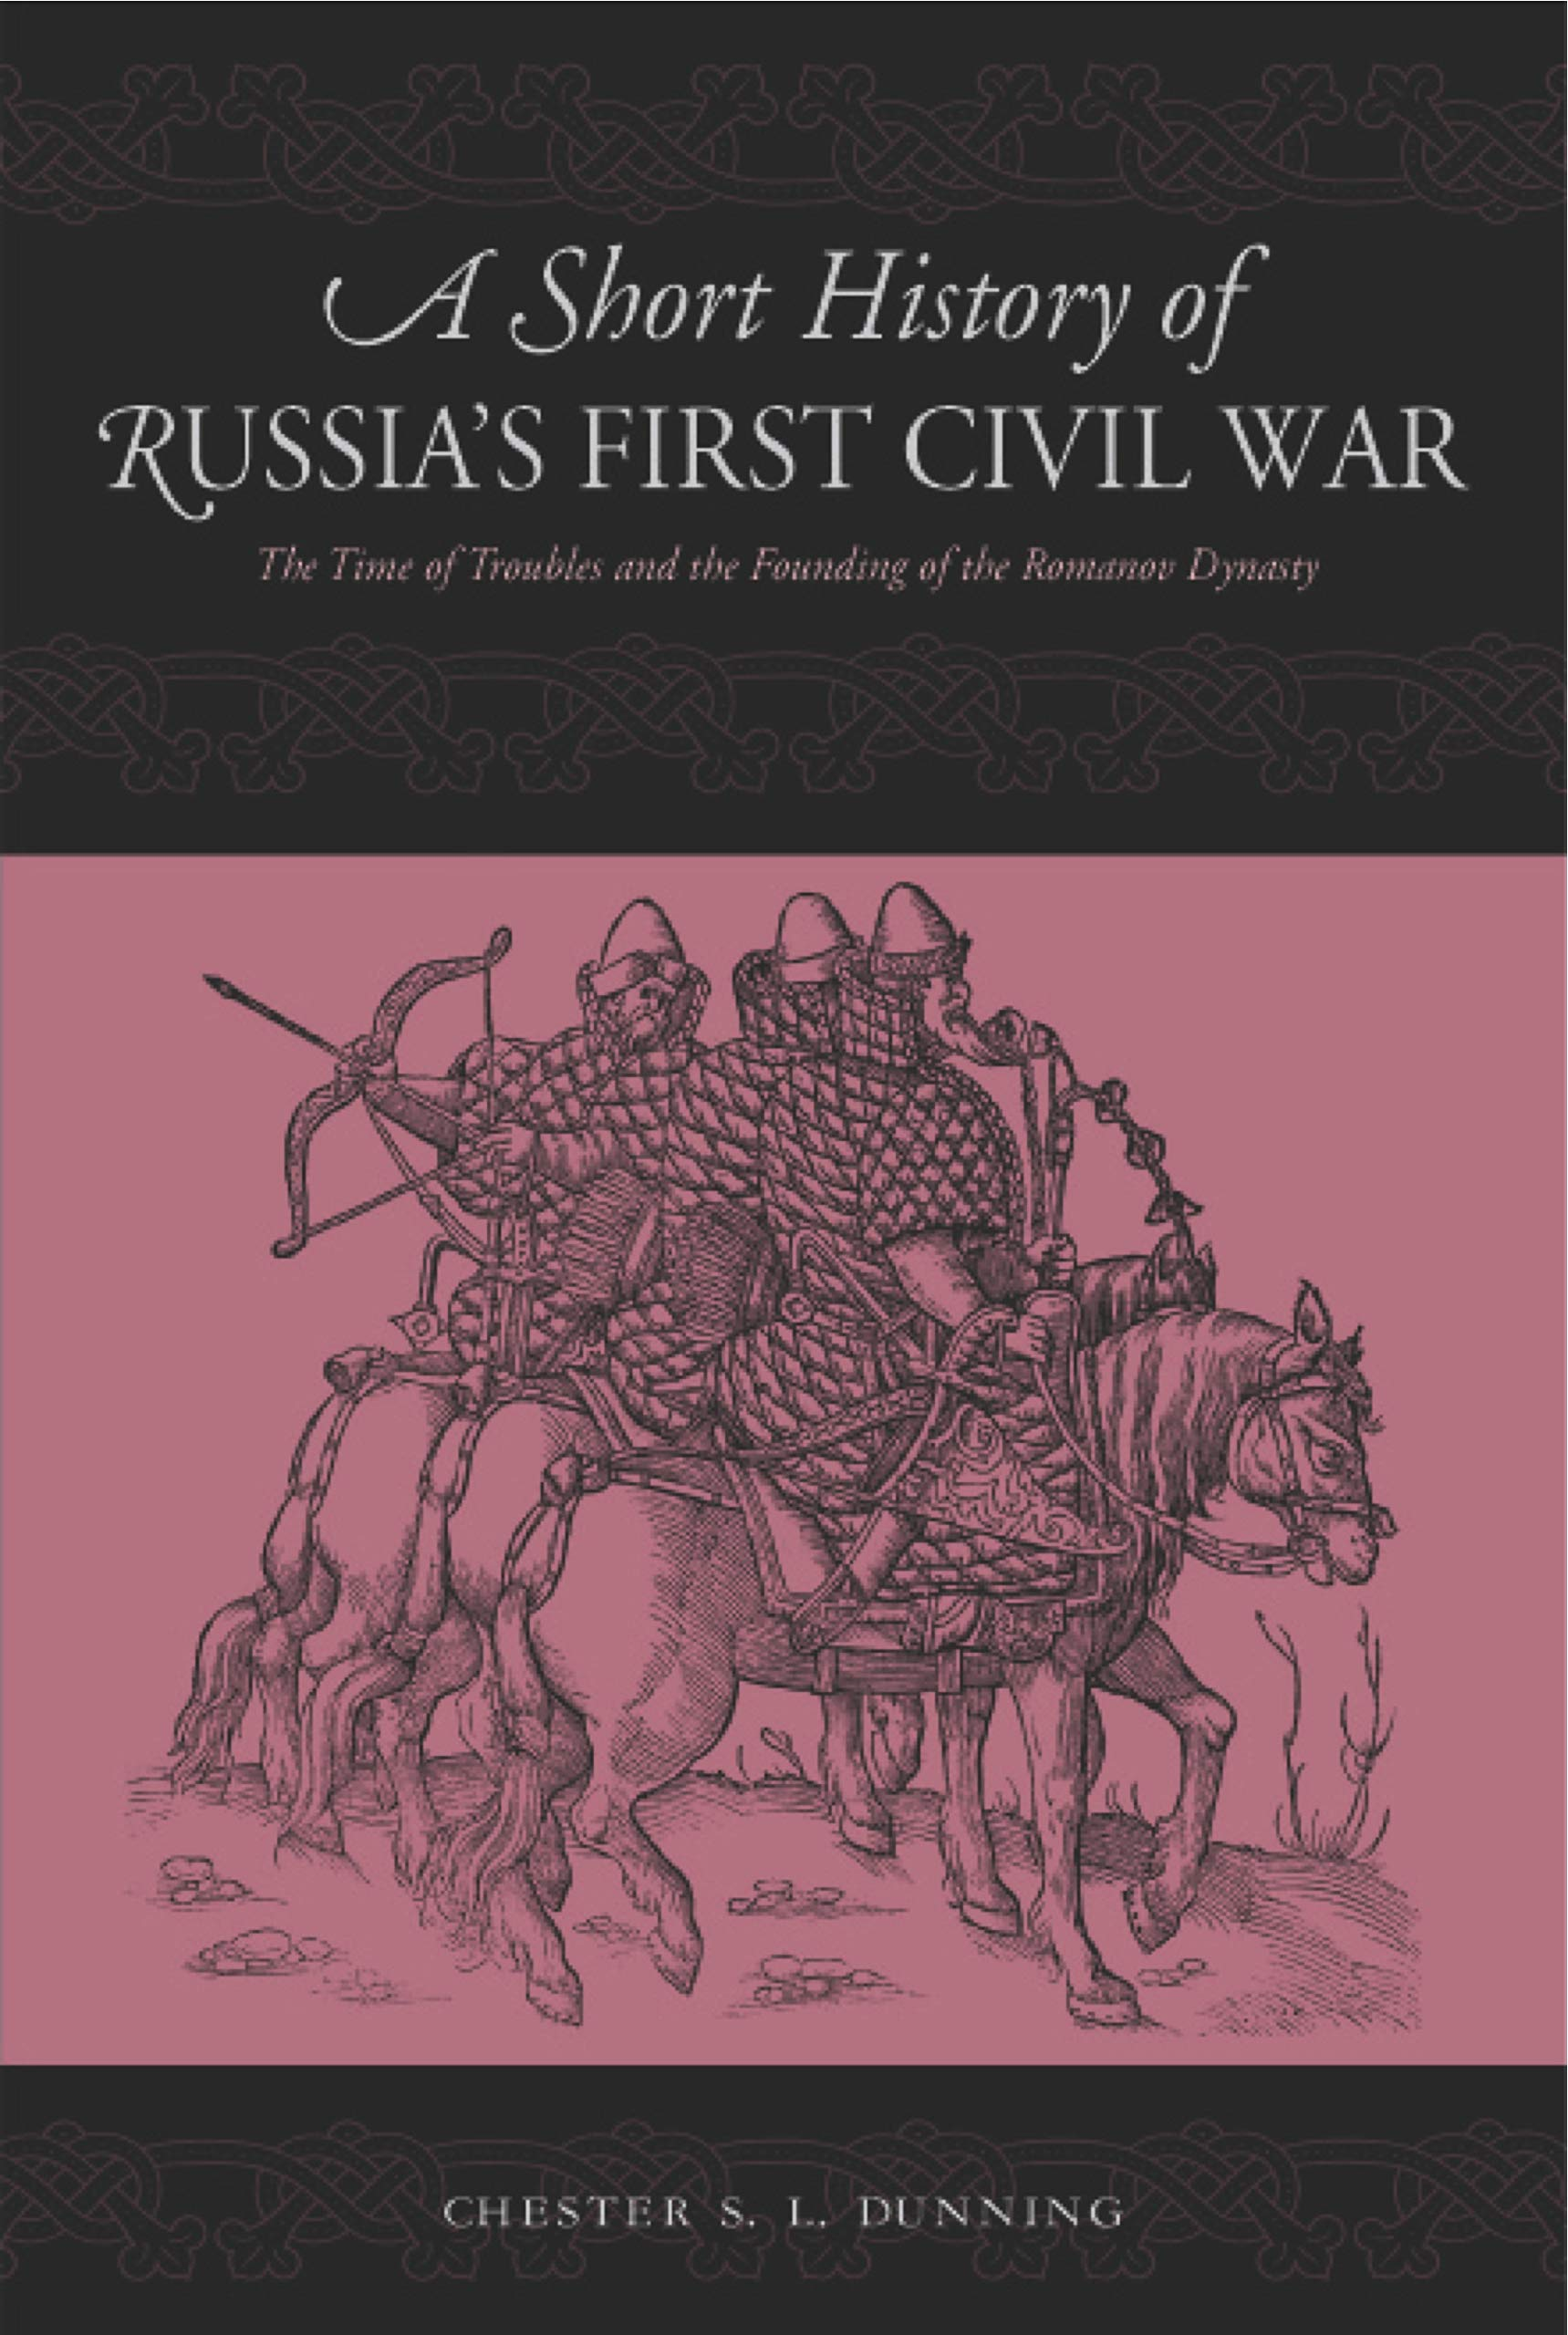 A Short History of Russia's First Civil War: The Time of Troubles and the Founding of the Romanov Dynasty: From the Time of Troubles to the Founding of the Romanov Dynasty por Chester S. L. Dunning